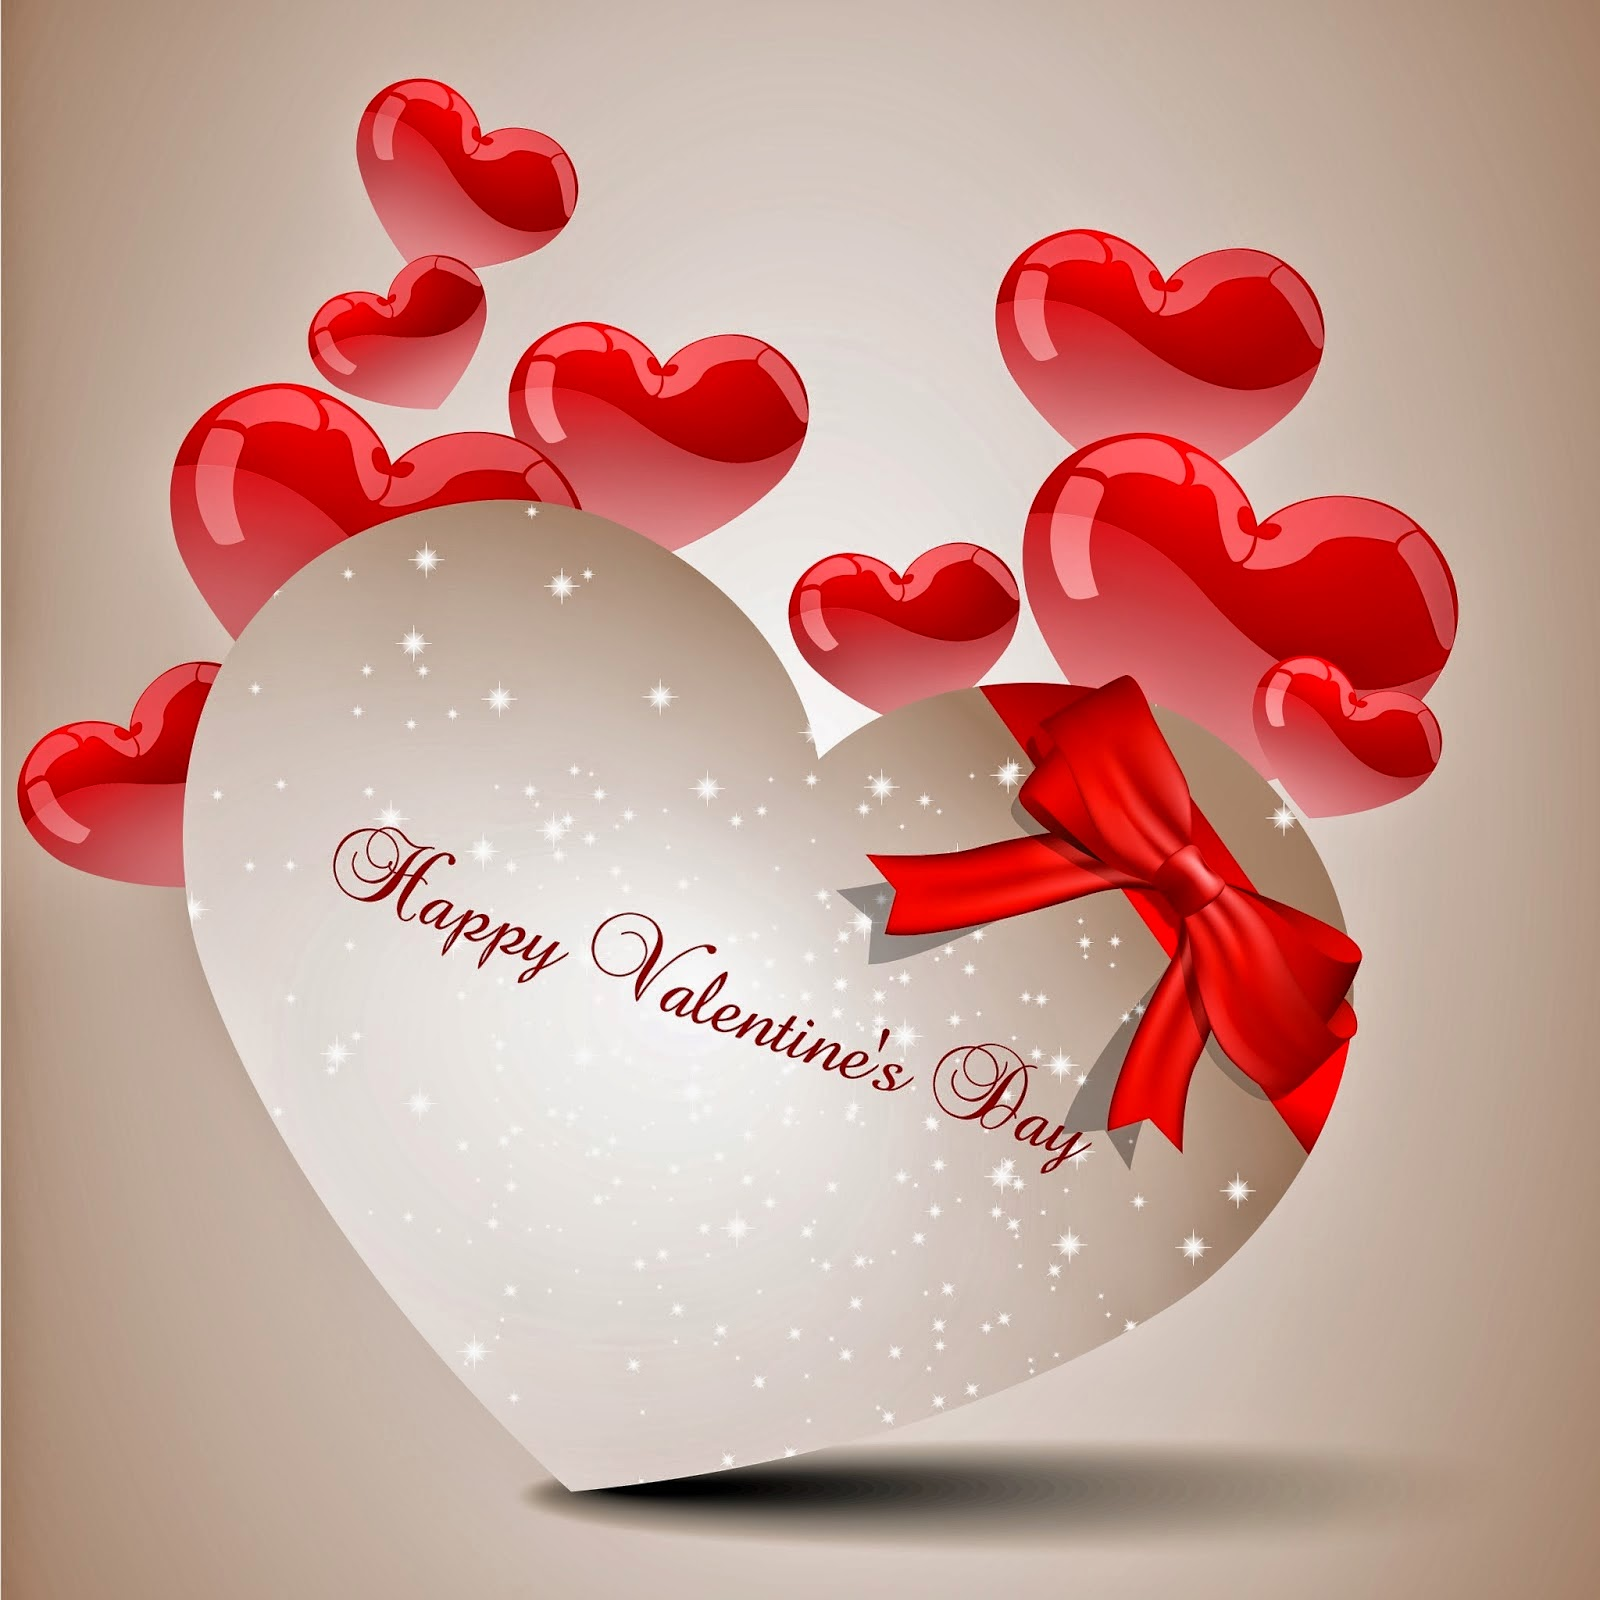 download valentines day images for whatsapp dp profile - Valentines Pictures Free